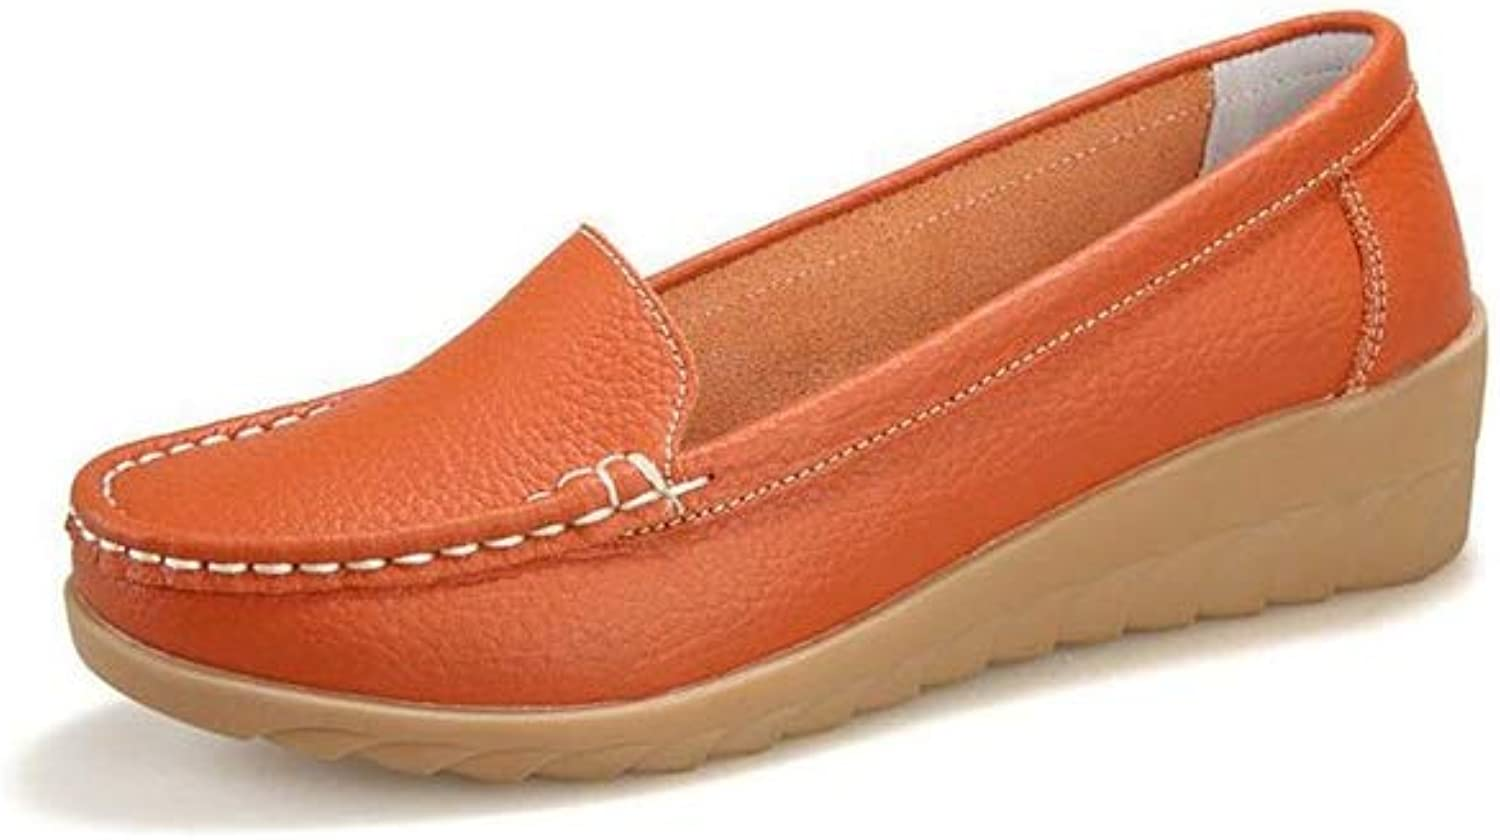 Excellent.c Classic Loafers Women's Flat shoes Casual shoes Walking shoes